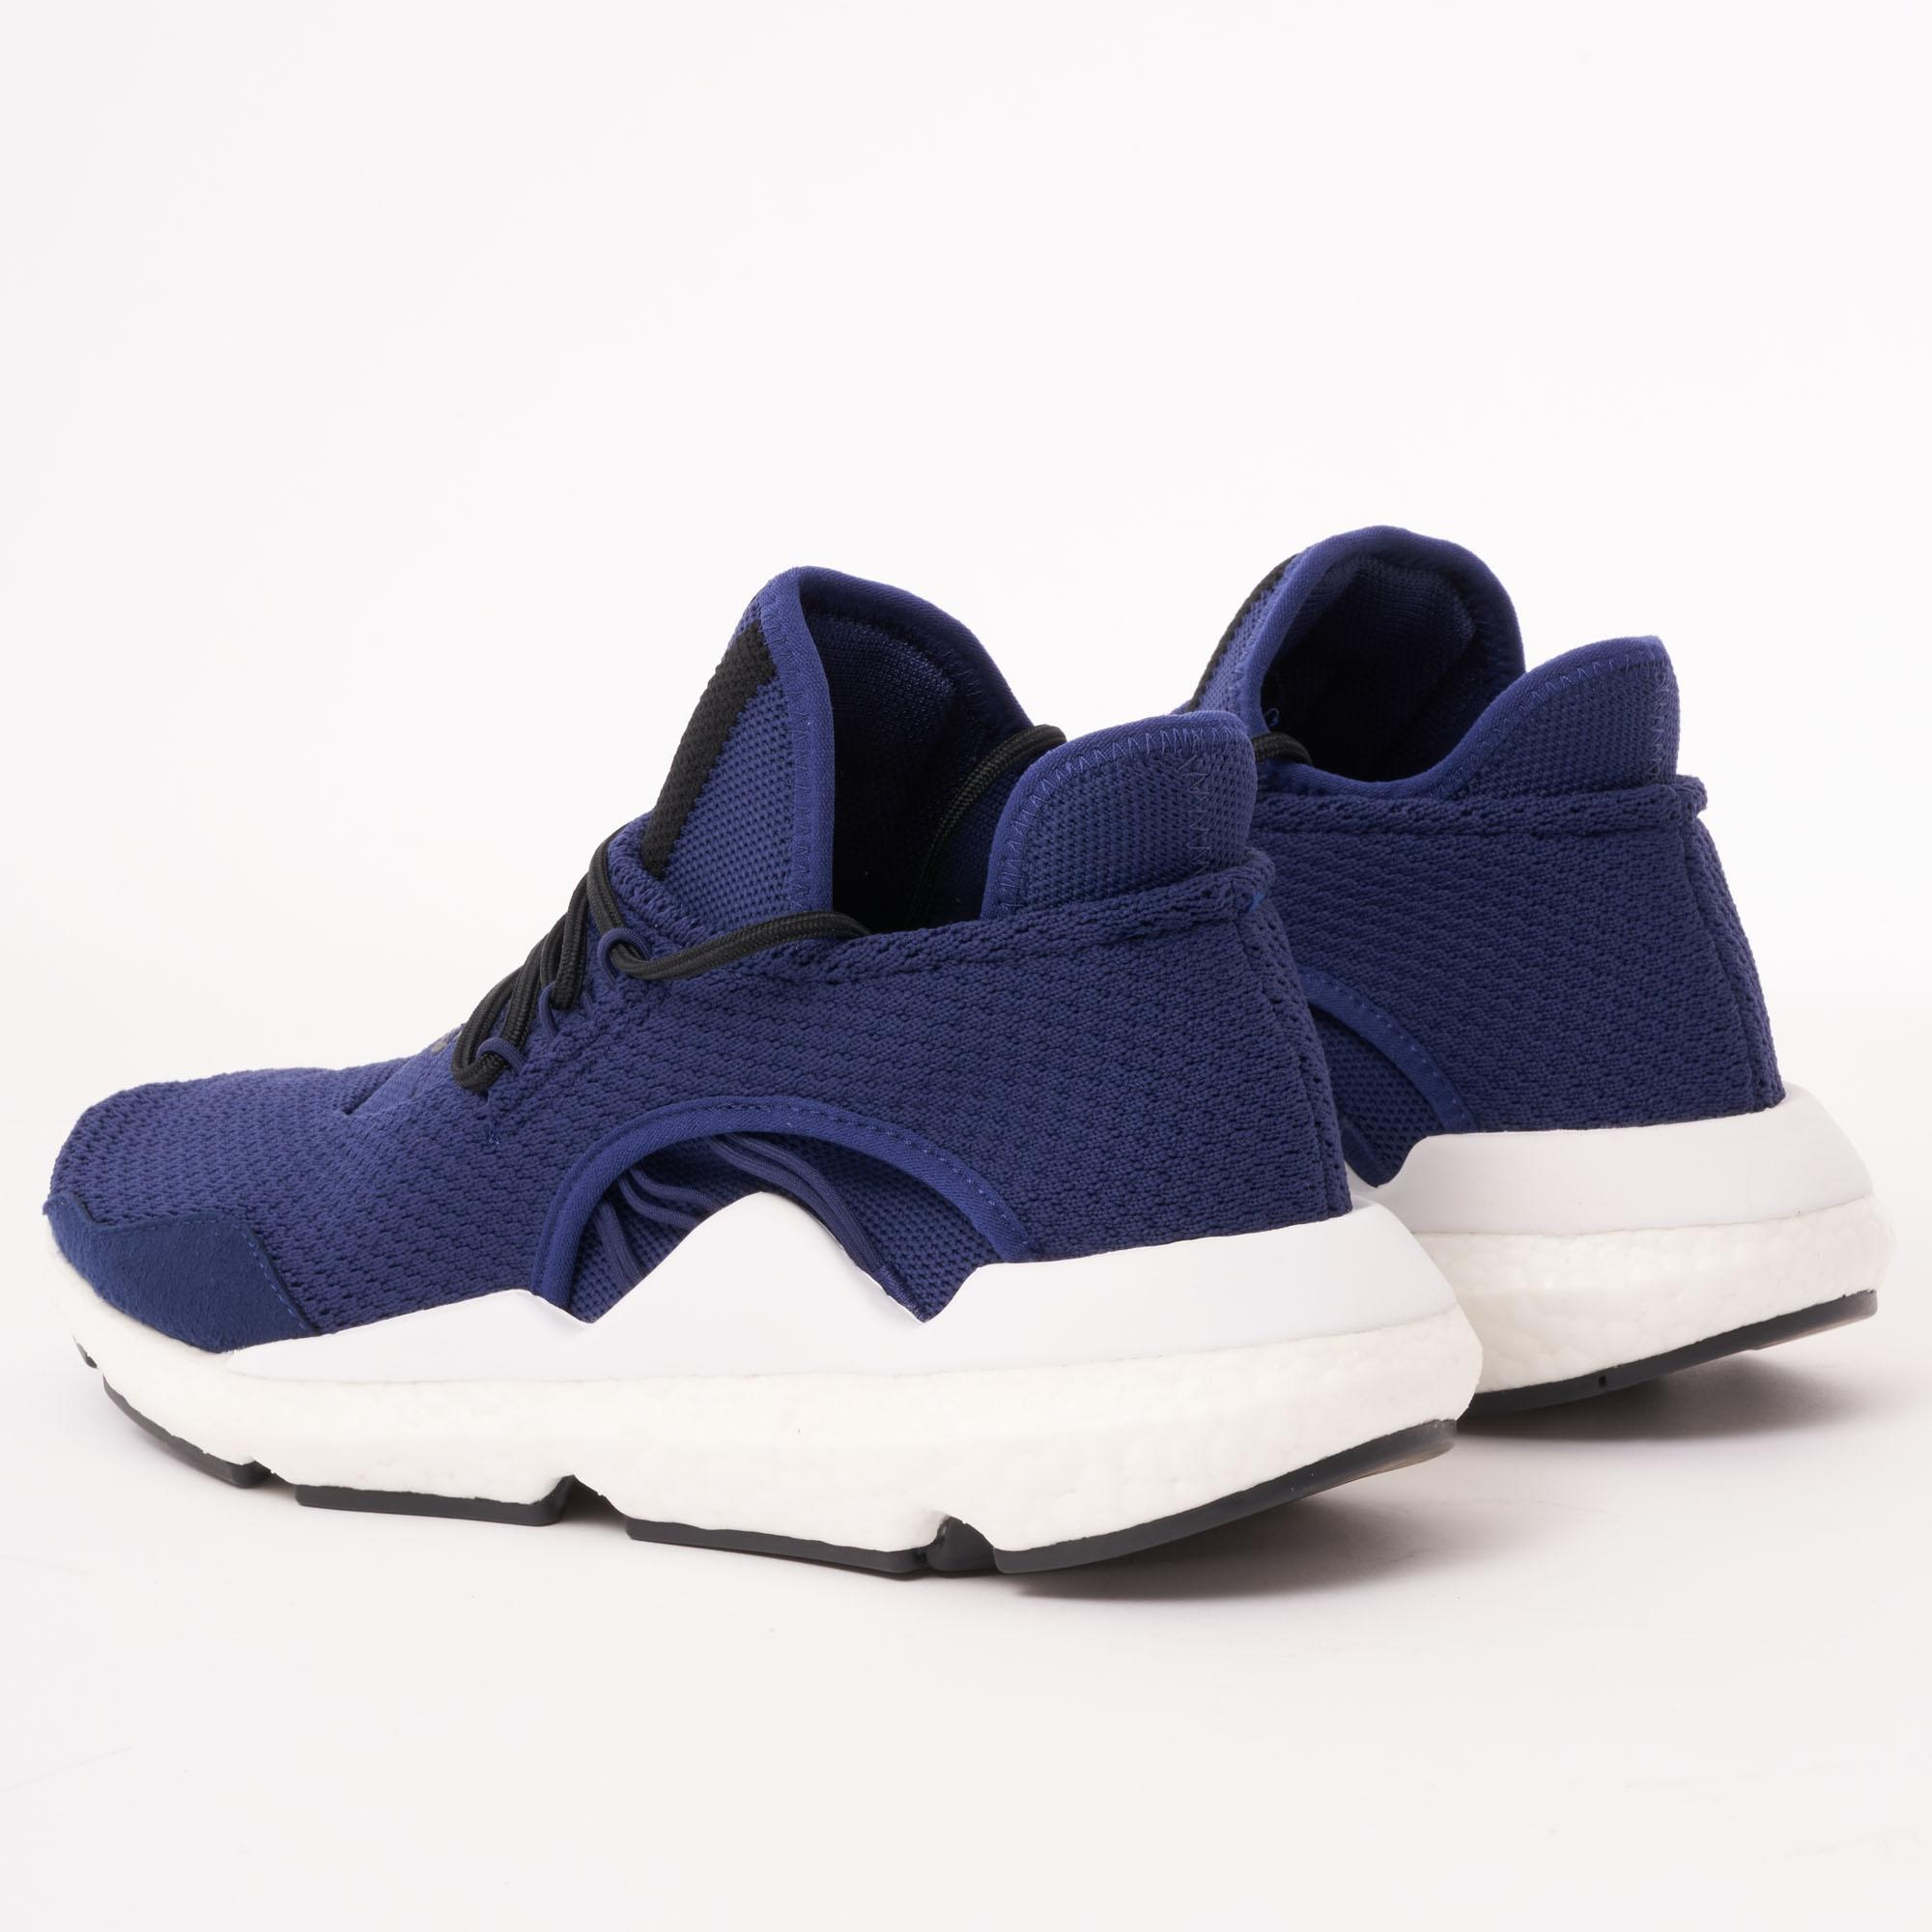 35f5a3541f476 Lyst - Y-3 Saikou in Blue for Men - Save 35%